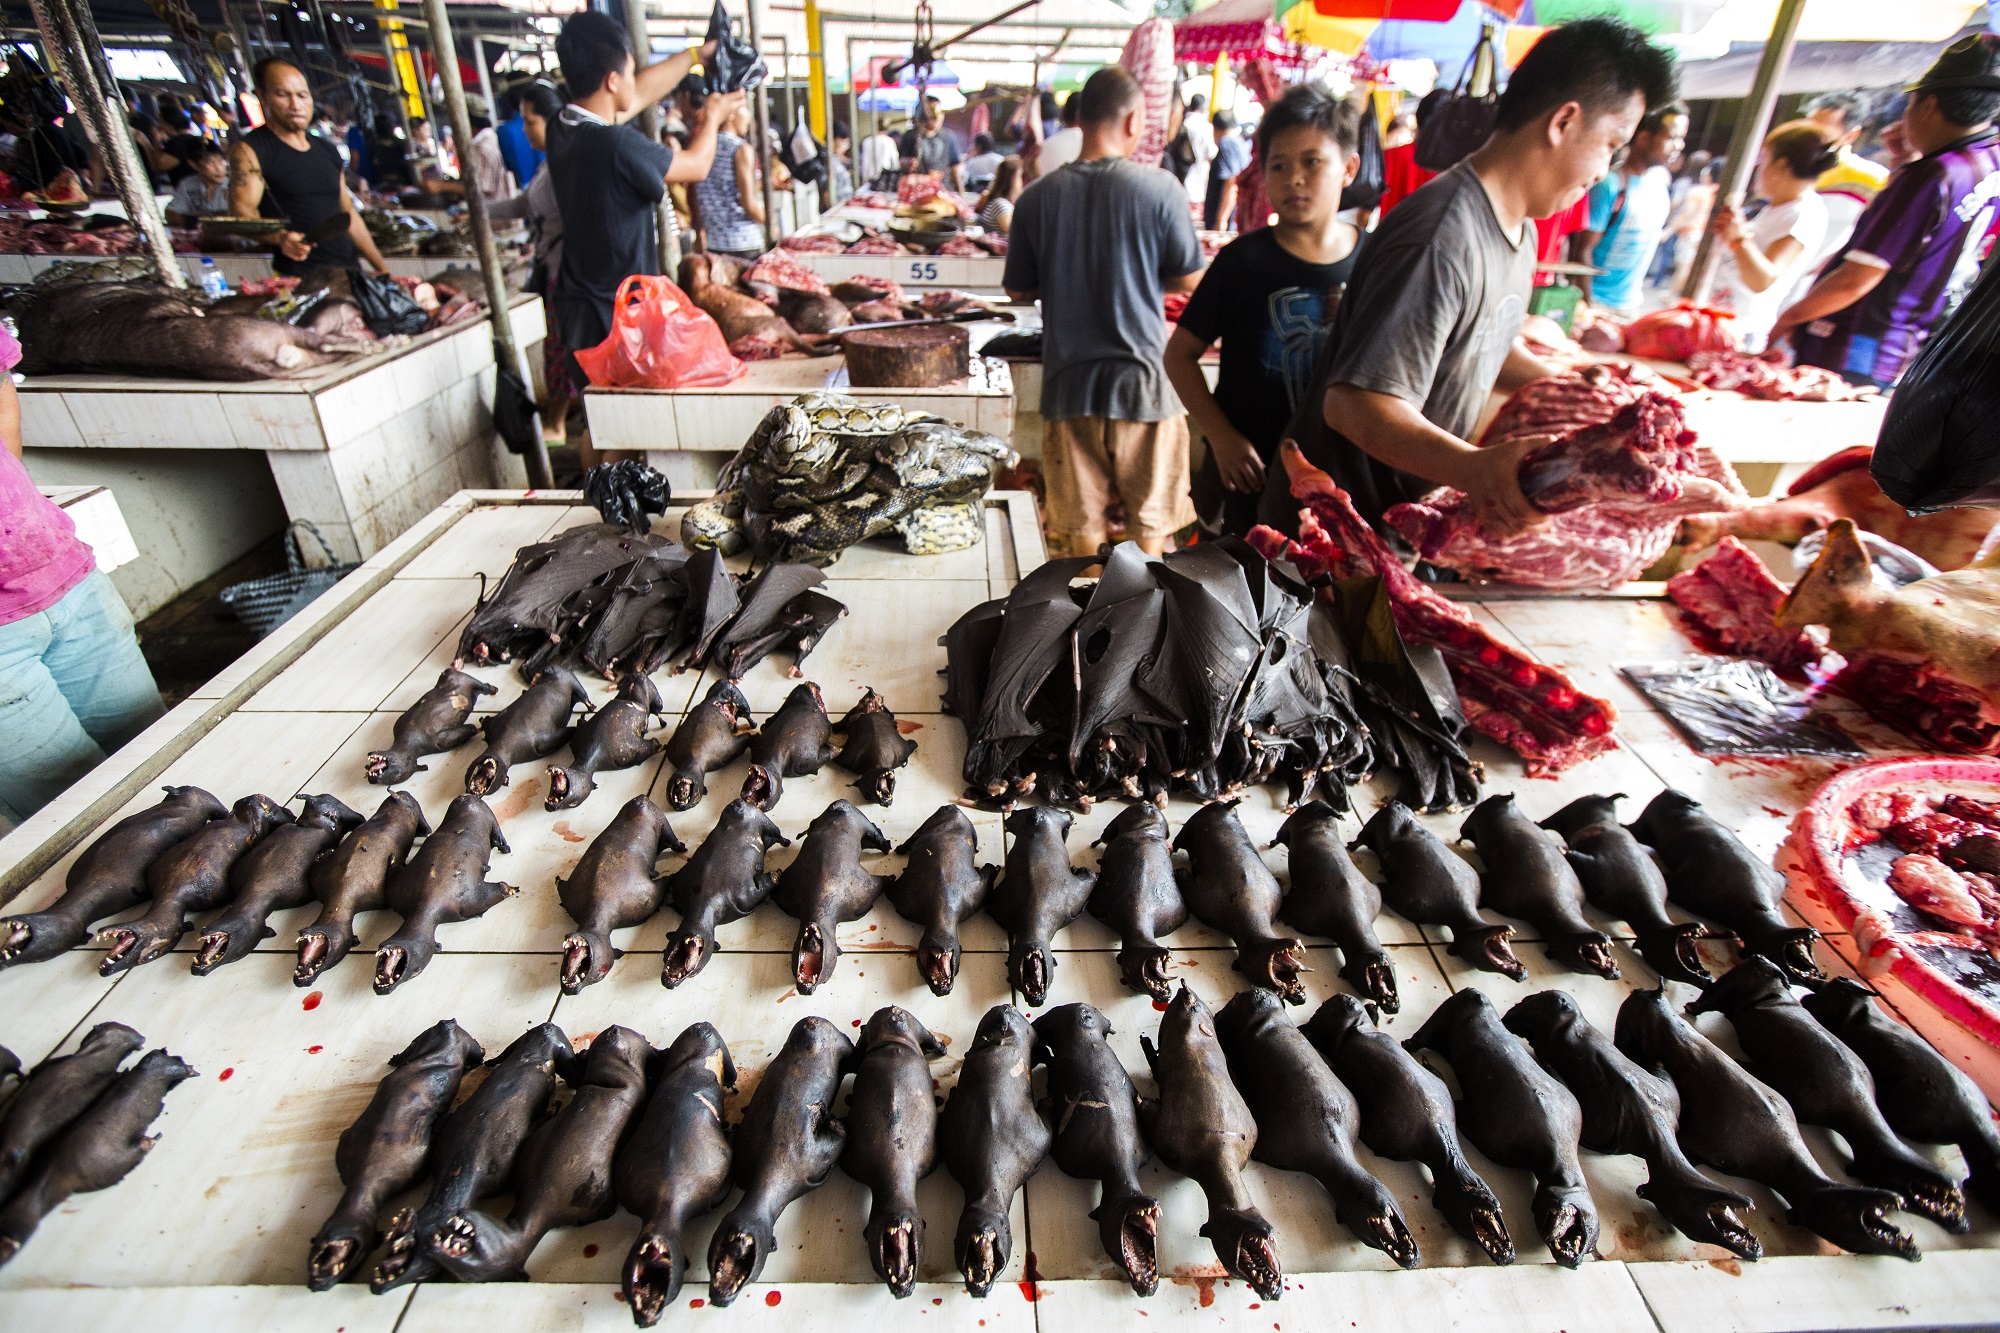 Global Initiative Outlines a One Health Approach to Reforming Wildlife Trade Laws